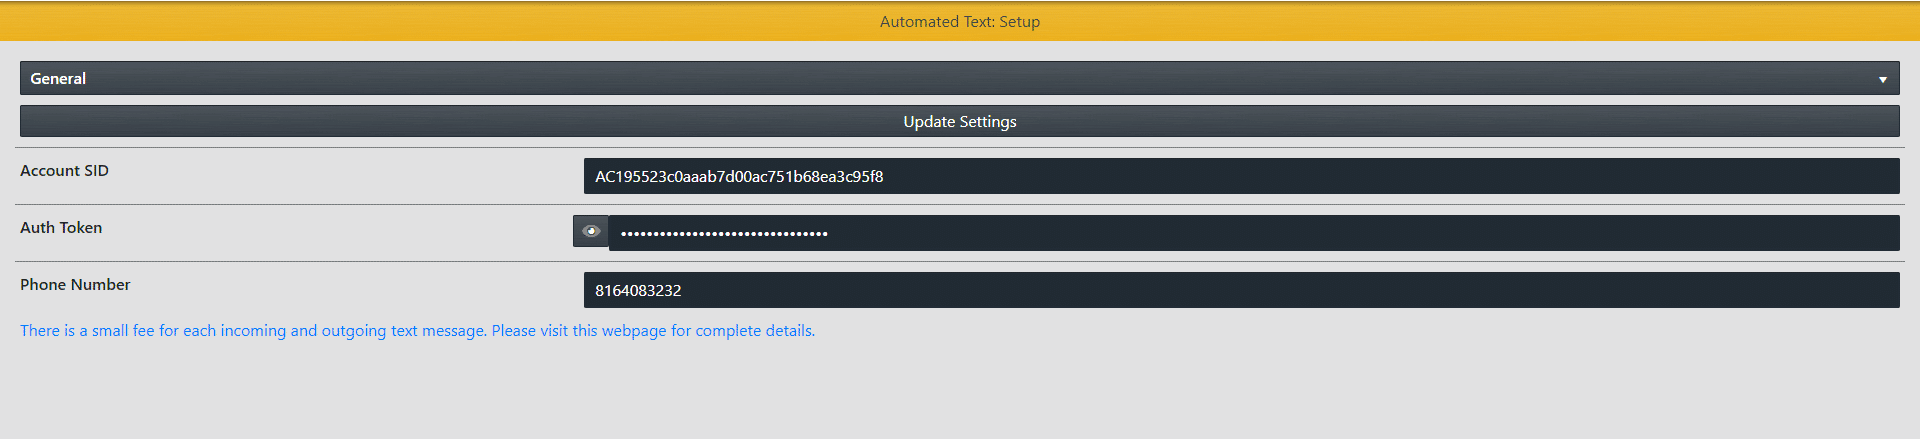 Automated Text: Setup Credentials